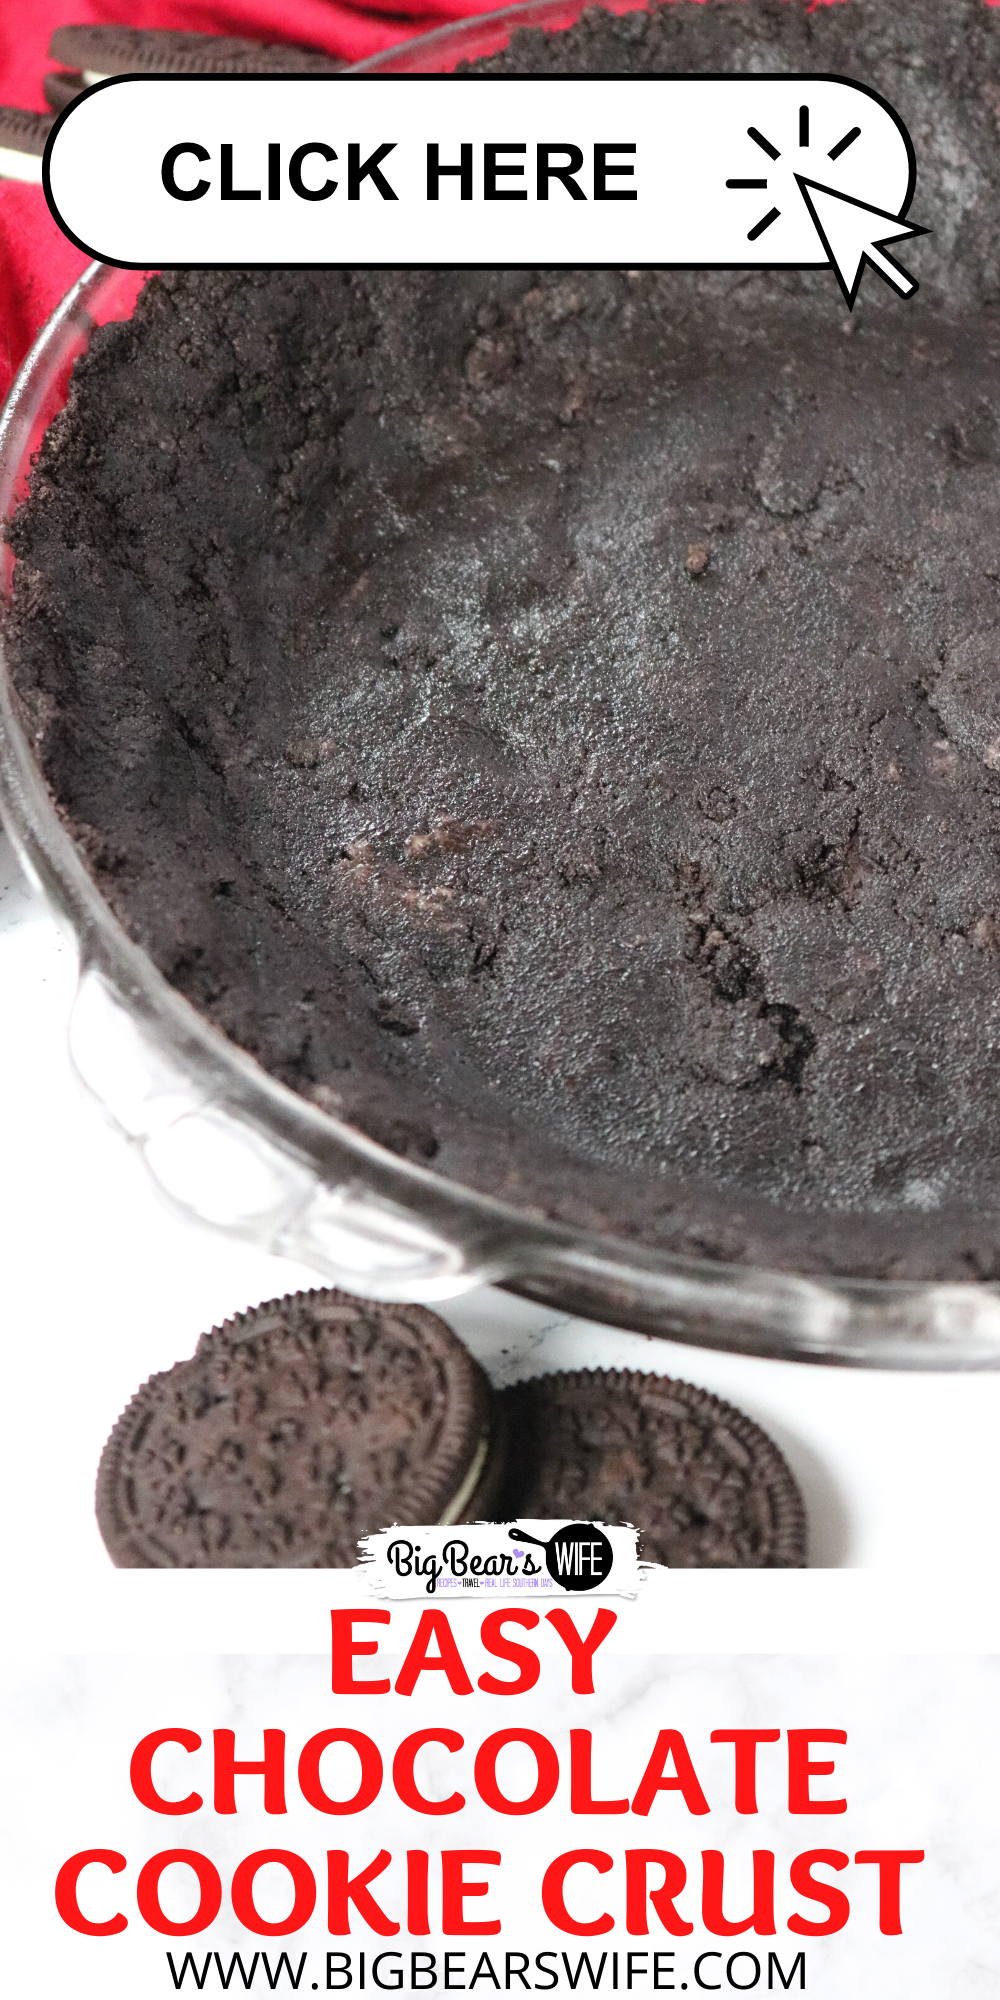 Two ingredients is all it takes to create this Easy Chocolate Cookie Crust at home! Perfect for Bake or No Bake Pie Options! This Oreo cookie crust is so delicious and easy to make! Easy Chocolate Cookie Crust - Bake or No Bake Options via @bigbearswife